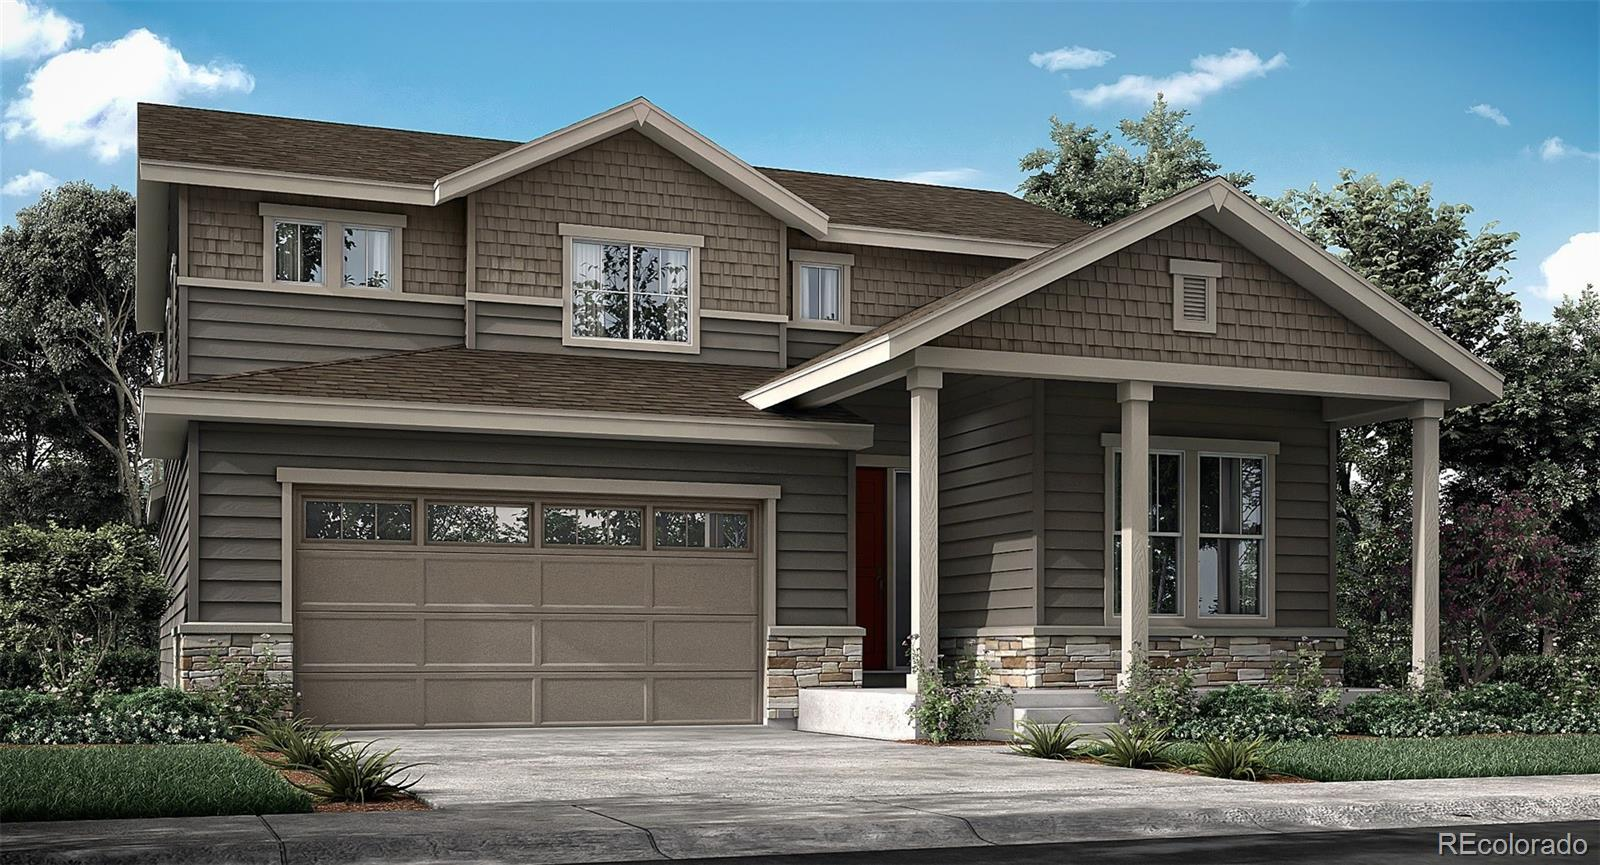 Available June 2020! This stunning Bristlecone 2-story home features 4 beds (3 upper / 1 main), 3 baths, main floorstudy, kitchen w/breakfast nook, great room, unfinished basement and 3 car garage. Stylish grey cabinets, white subway tile backsplash, Lyra quartz, light grey flooring, glass block fireplace tile and more. This brand new CalAtlantic/Lennar community provides the best of Colorado living. Lennar provides the latest in energy efficiency and state of the art technology with several fabulous floorplans to choose from. Energy efficiency, and technology/connectivity seamlessly blended with luxury to make your new house a home. What some builders consider high-end upgrades, Lennar makes a standard inclusion. You will not be disappointed. This community offers single family homes for every lifestyle. Close to dining, shopping, entertainment and other amenities. Come see what you have been missing. Welcome Home